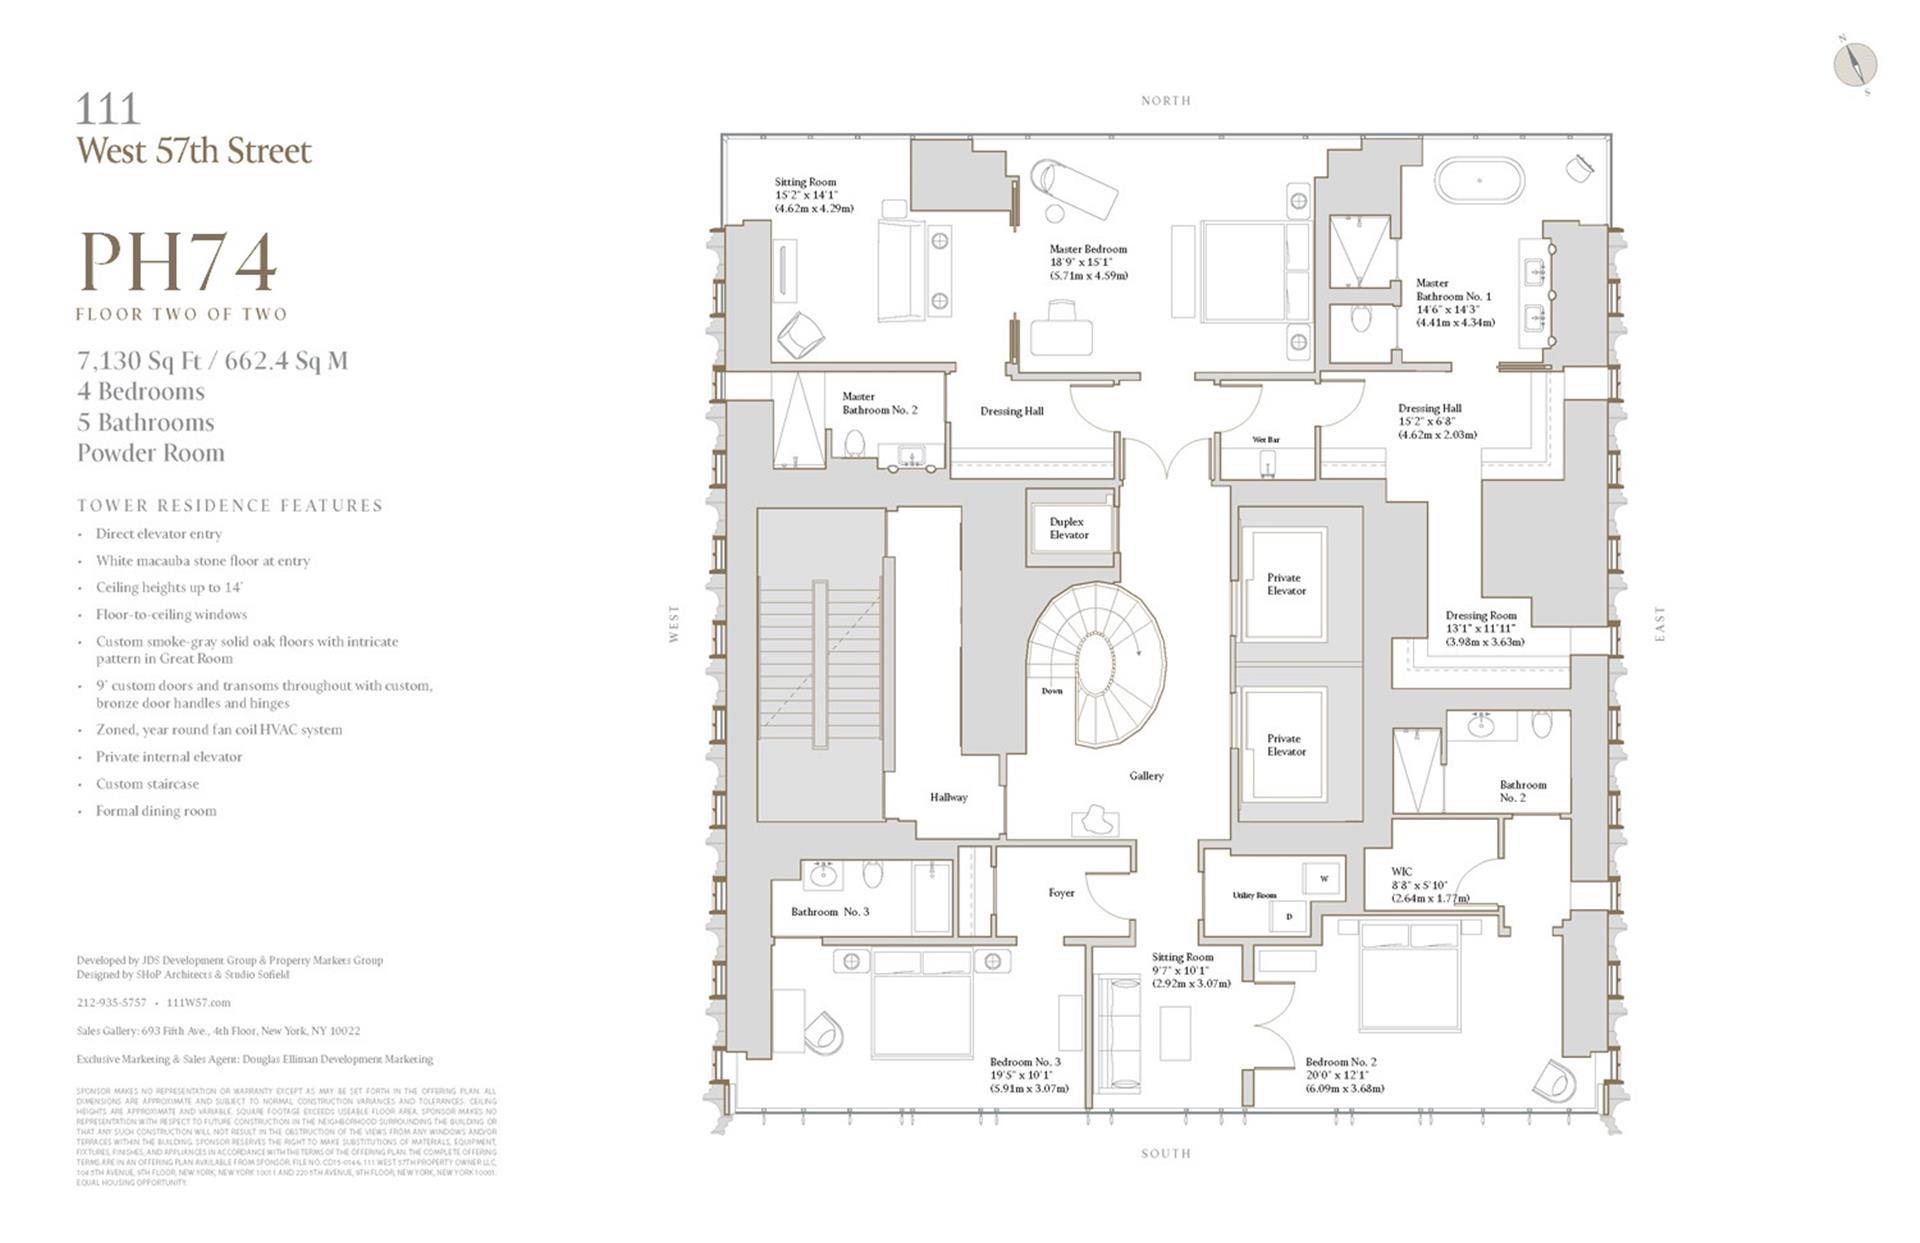 Floor plan of 111 West 57th St, PH74 - Central Park South, New York